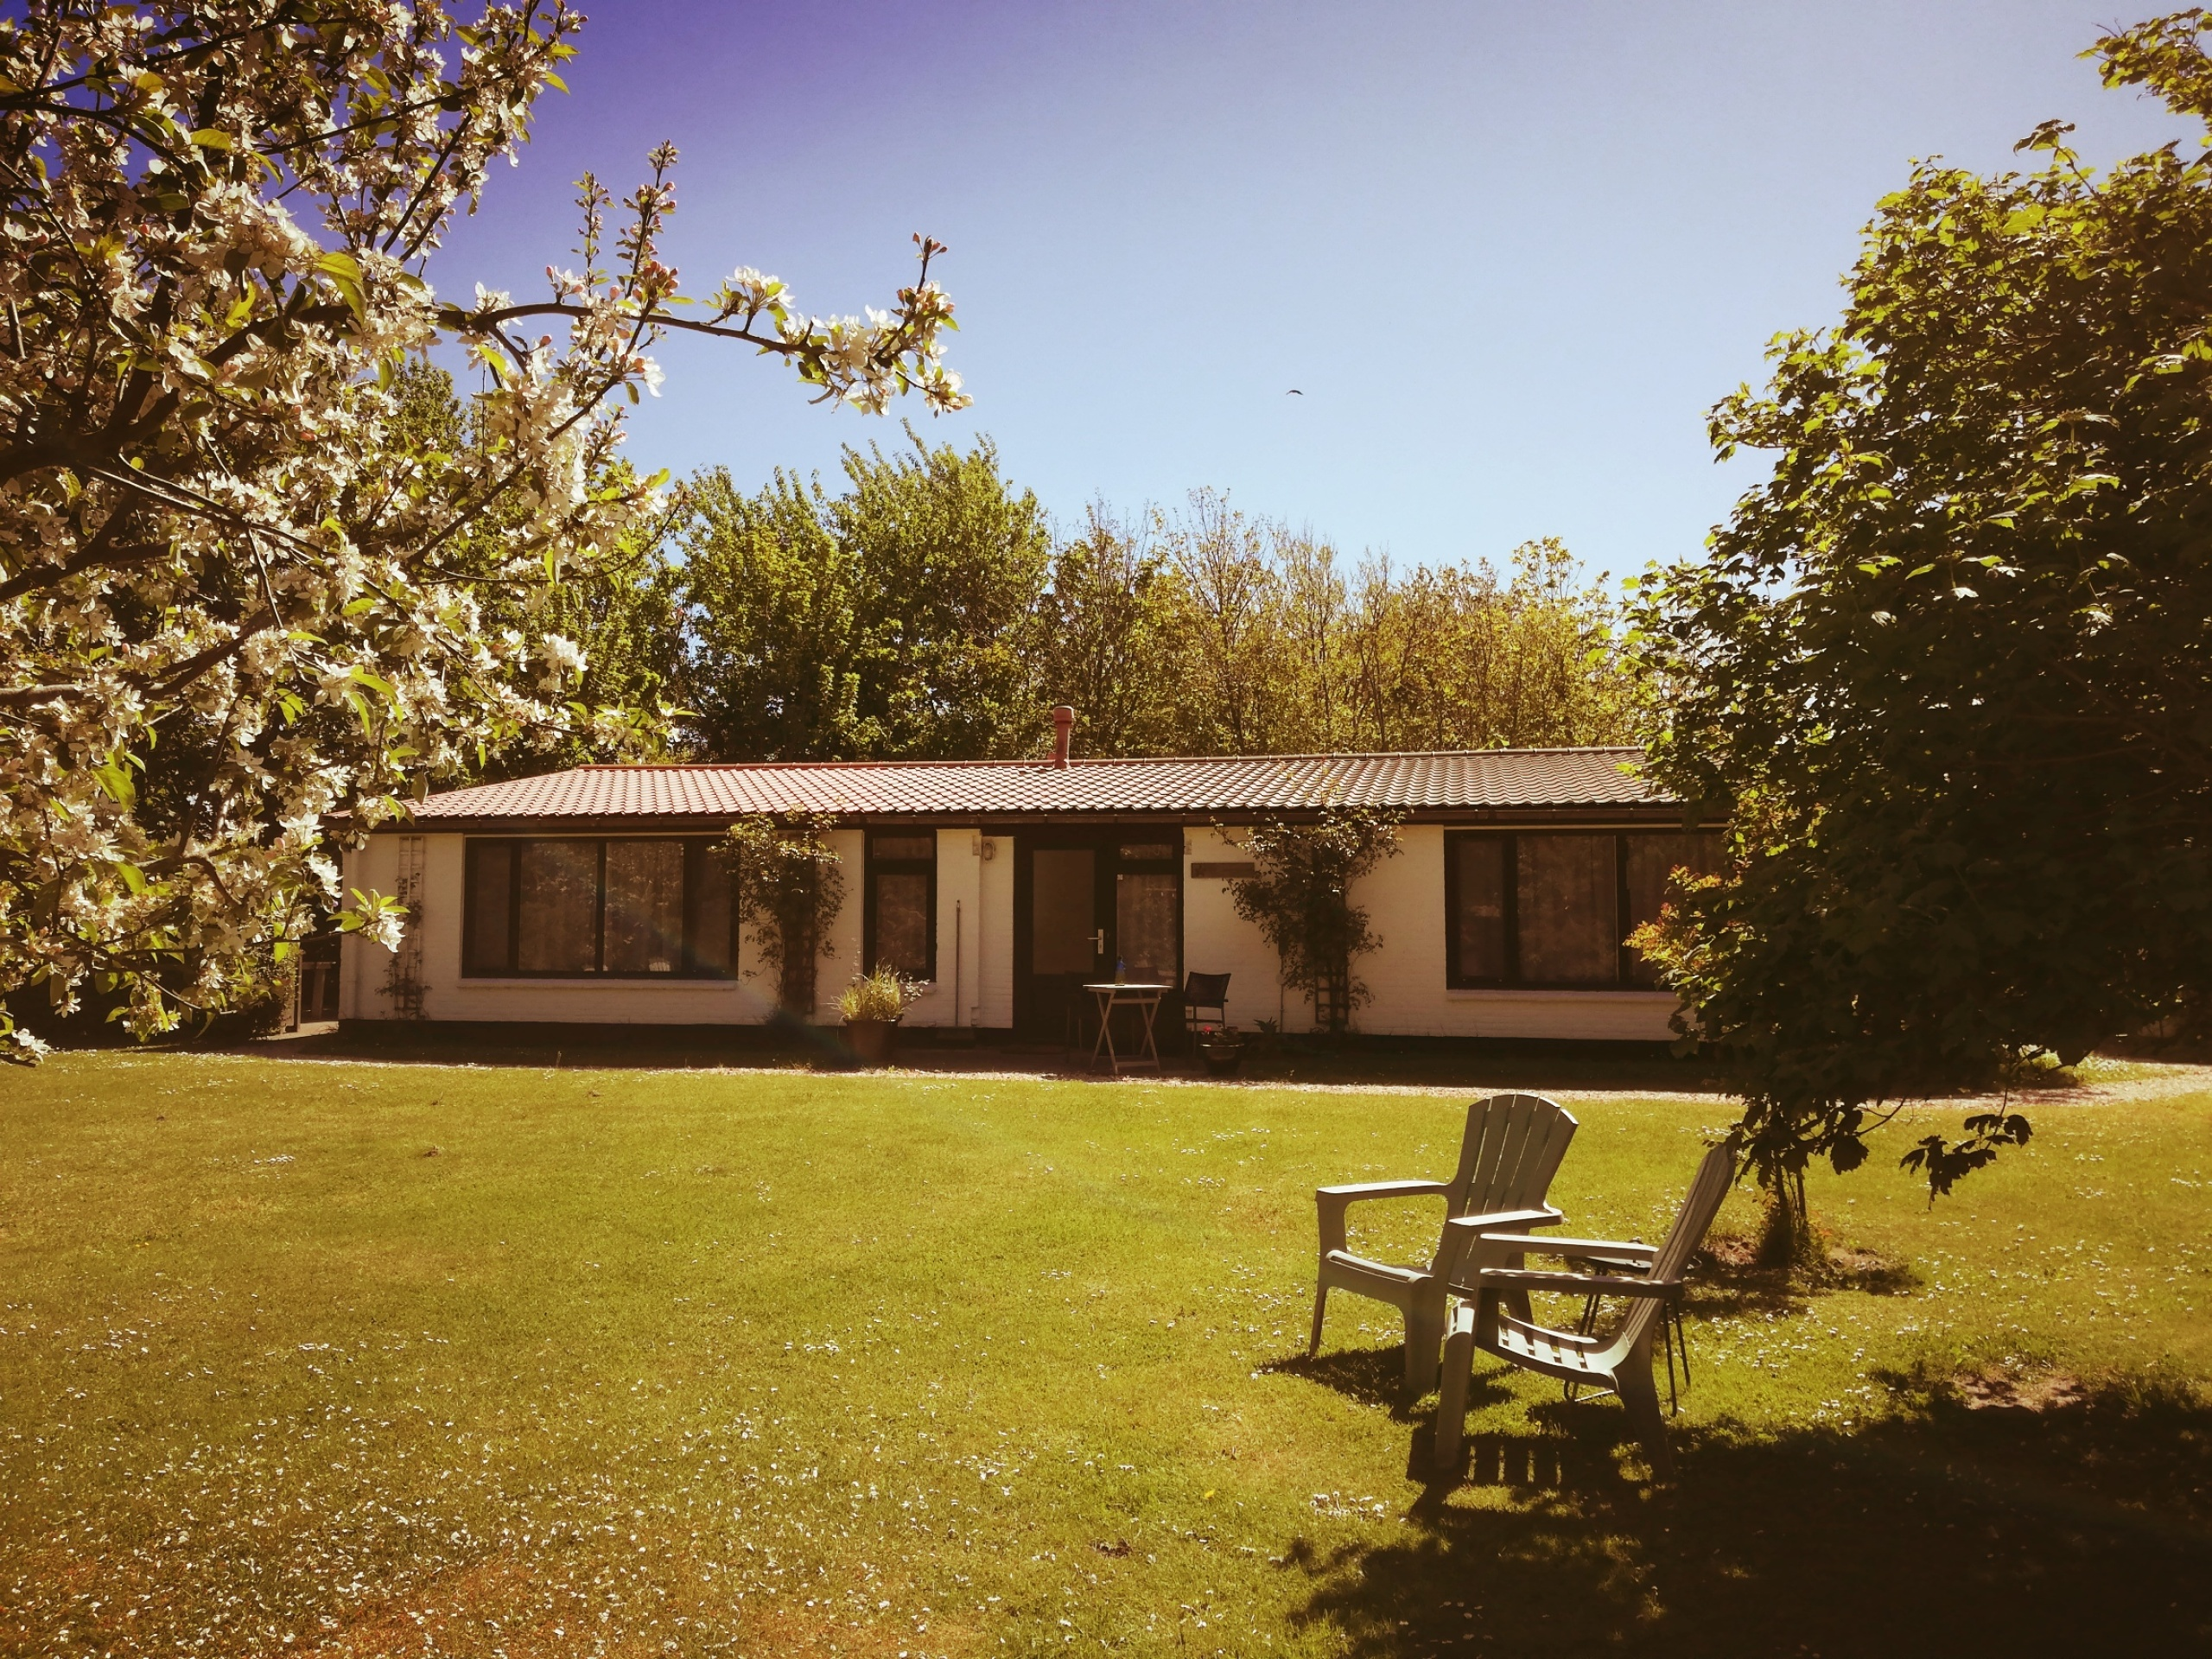 Attractive holiday home in a particularly beautiful location near De Cocksdorp